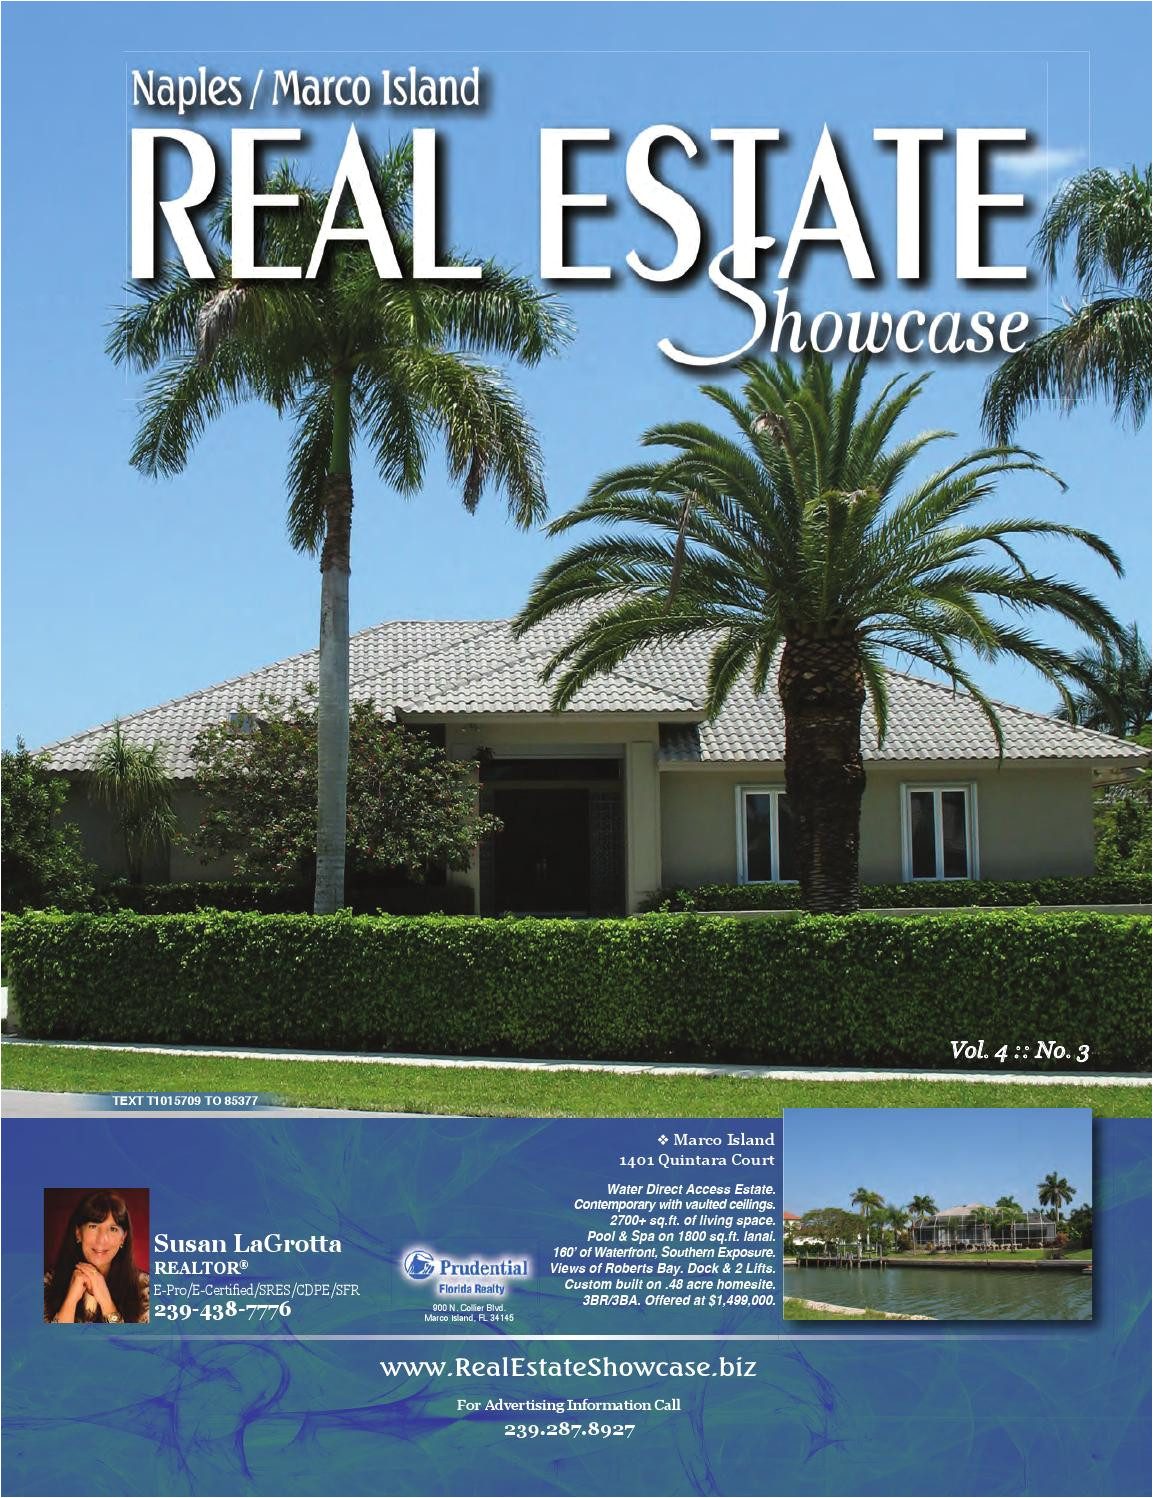 naples marco island real estate showcase 4 3 by real estate showcase inc issuu